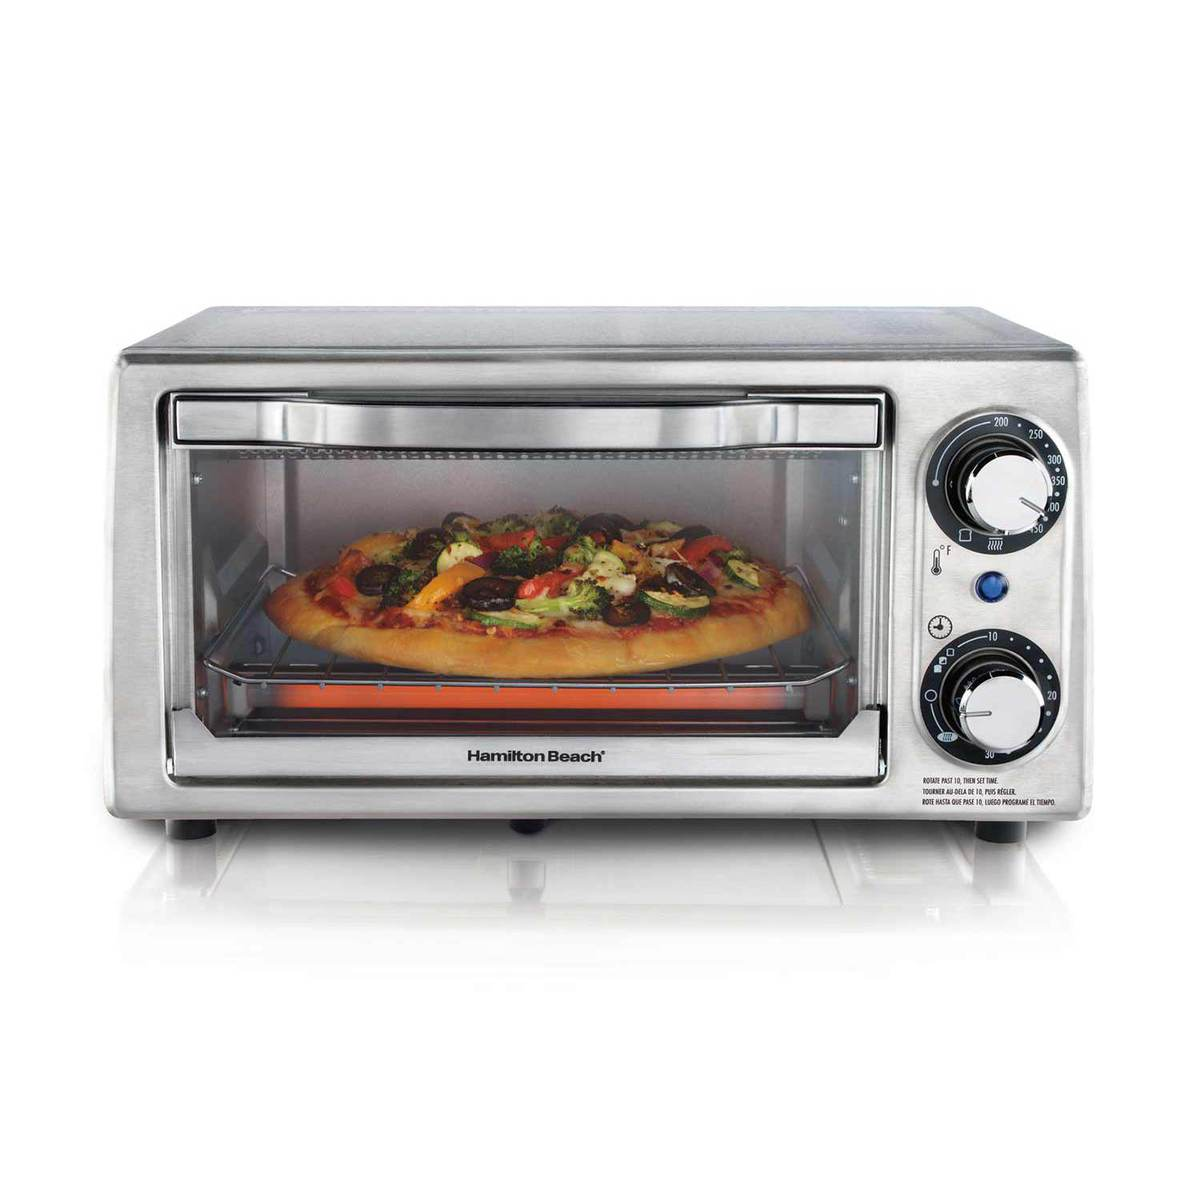 Uncategorized The Bay Small Kitchen Appliances toaster ovens hamiltonbeach com stainless steel 4 slice oven 31138